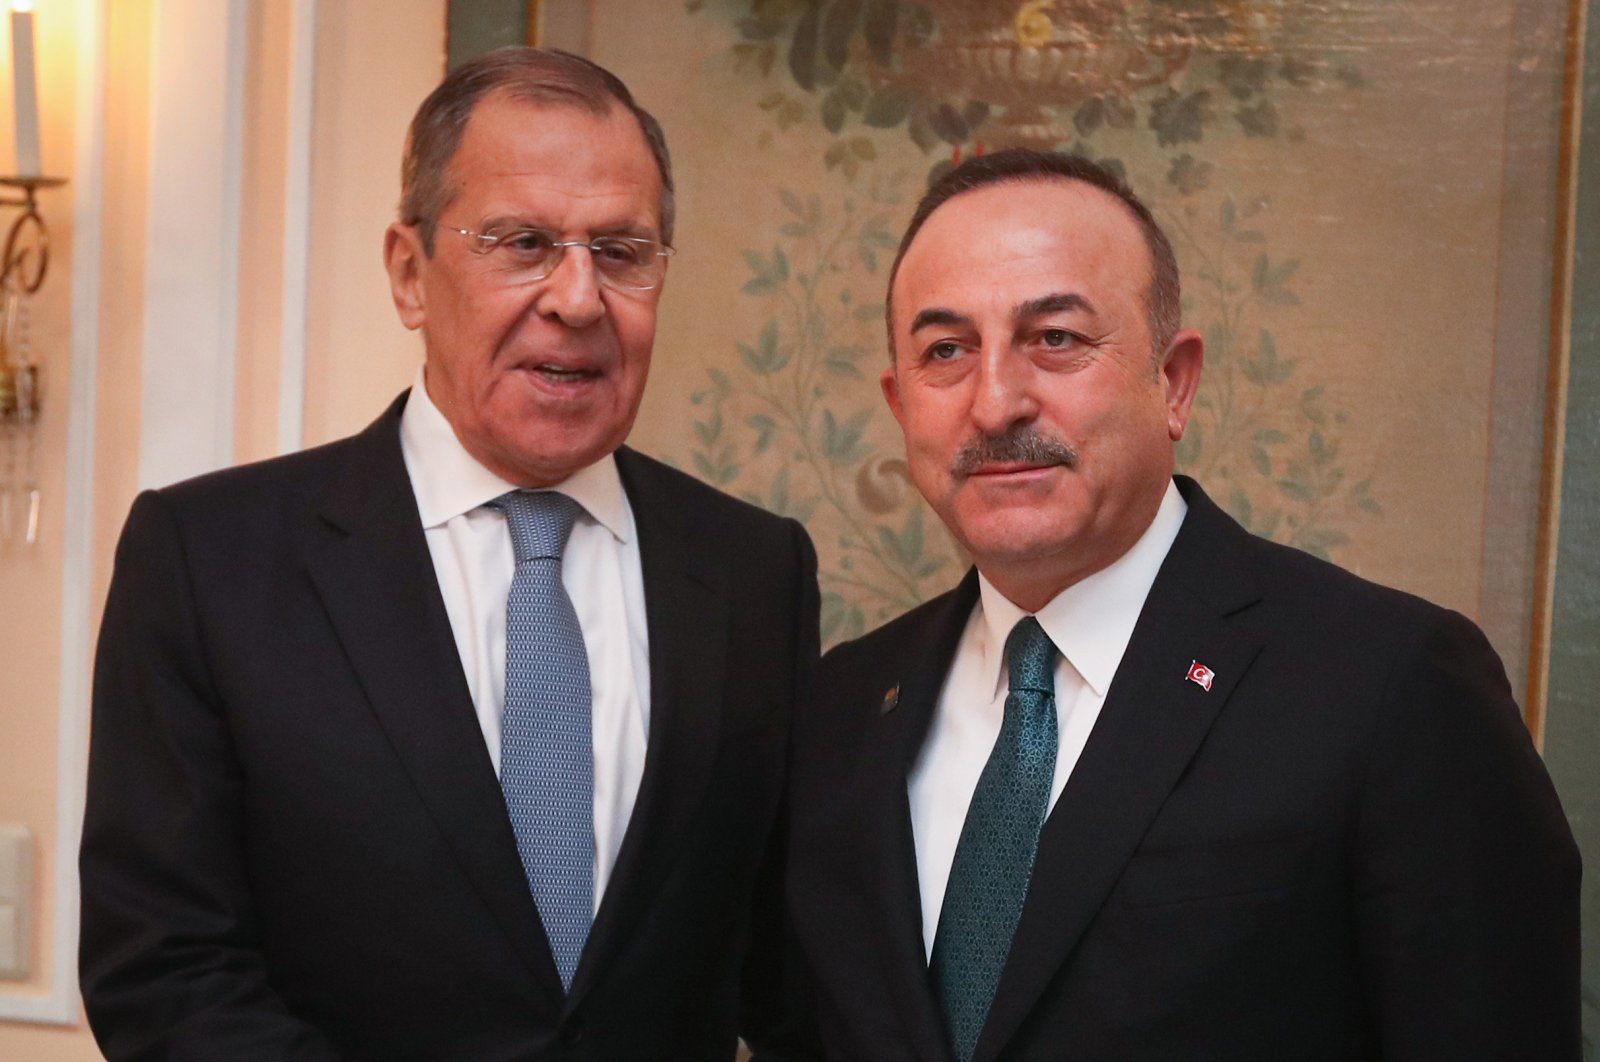 Foreign Minister Mevlüt Çavuşoğlu and his Russian counterpart Sergey Lavrov during a conference in Munich, February 17, 2020. (AA Photo)